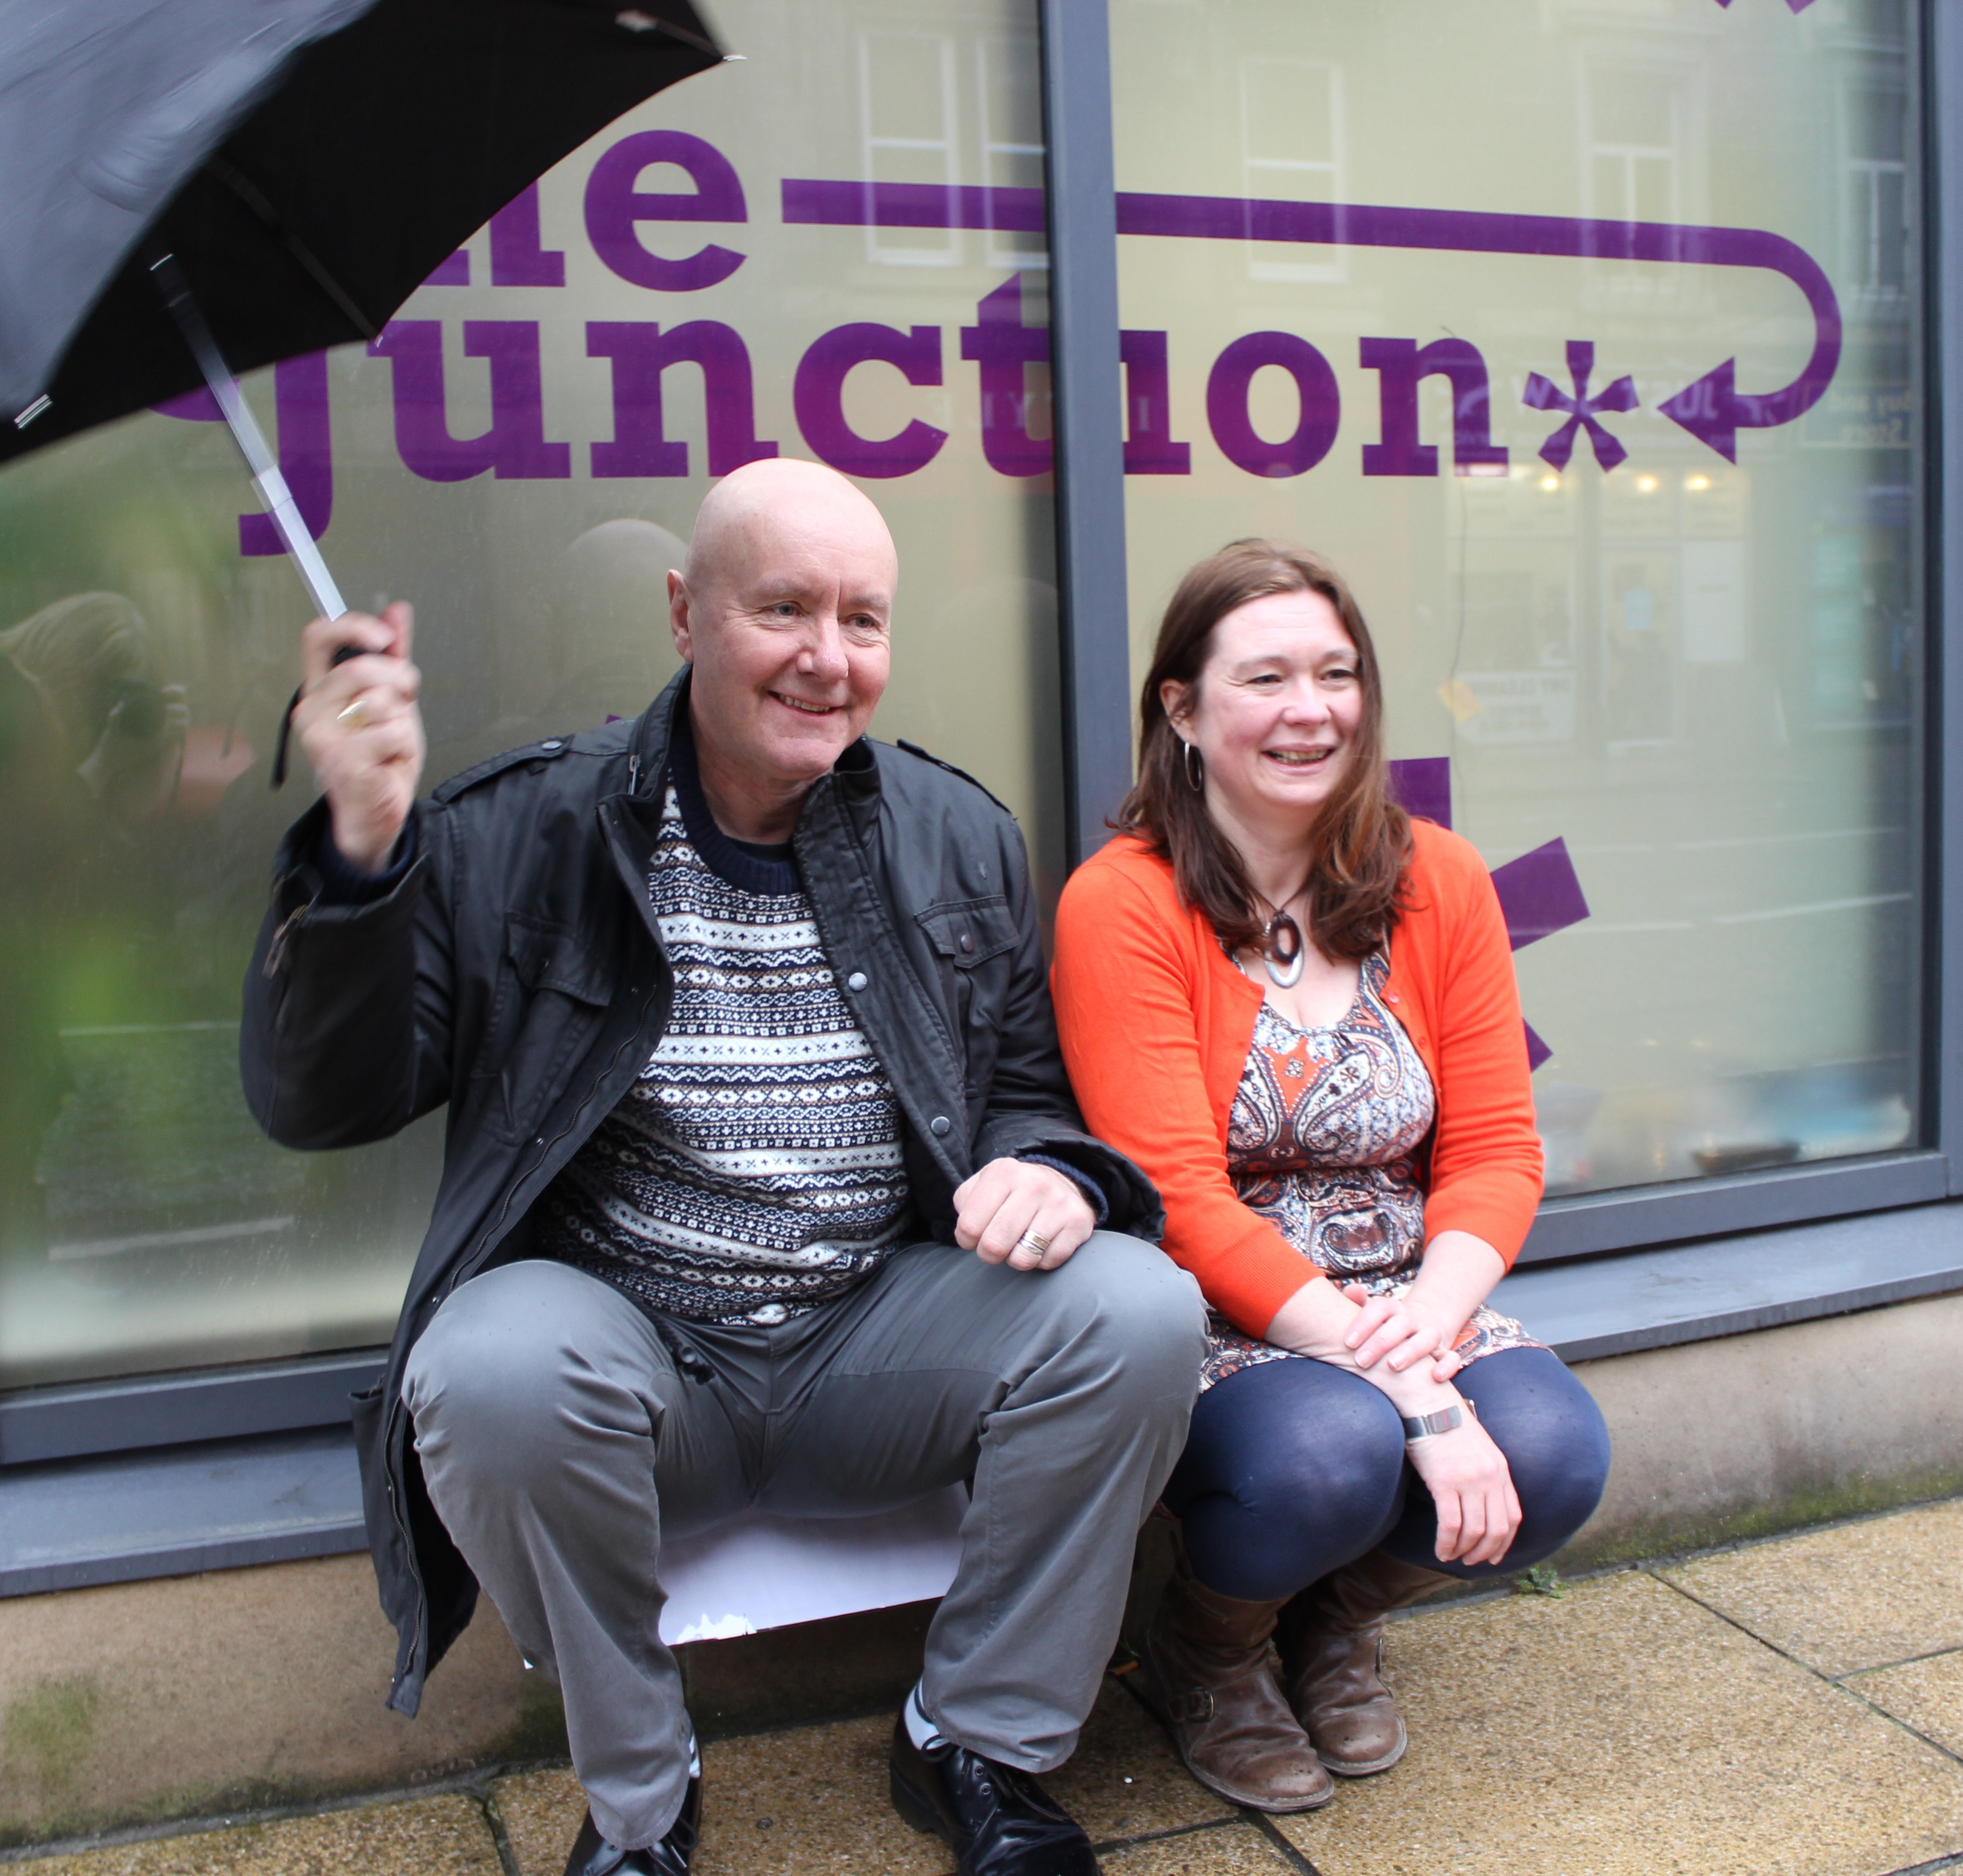 Right to left: Sam Anderson, Director at the Junction. Irvine Welsh, Patron at the Junction.